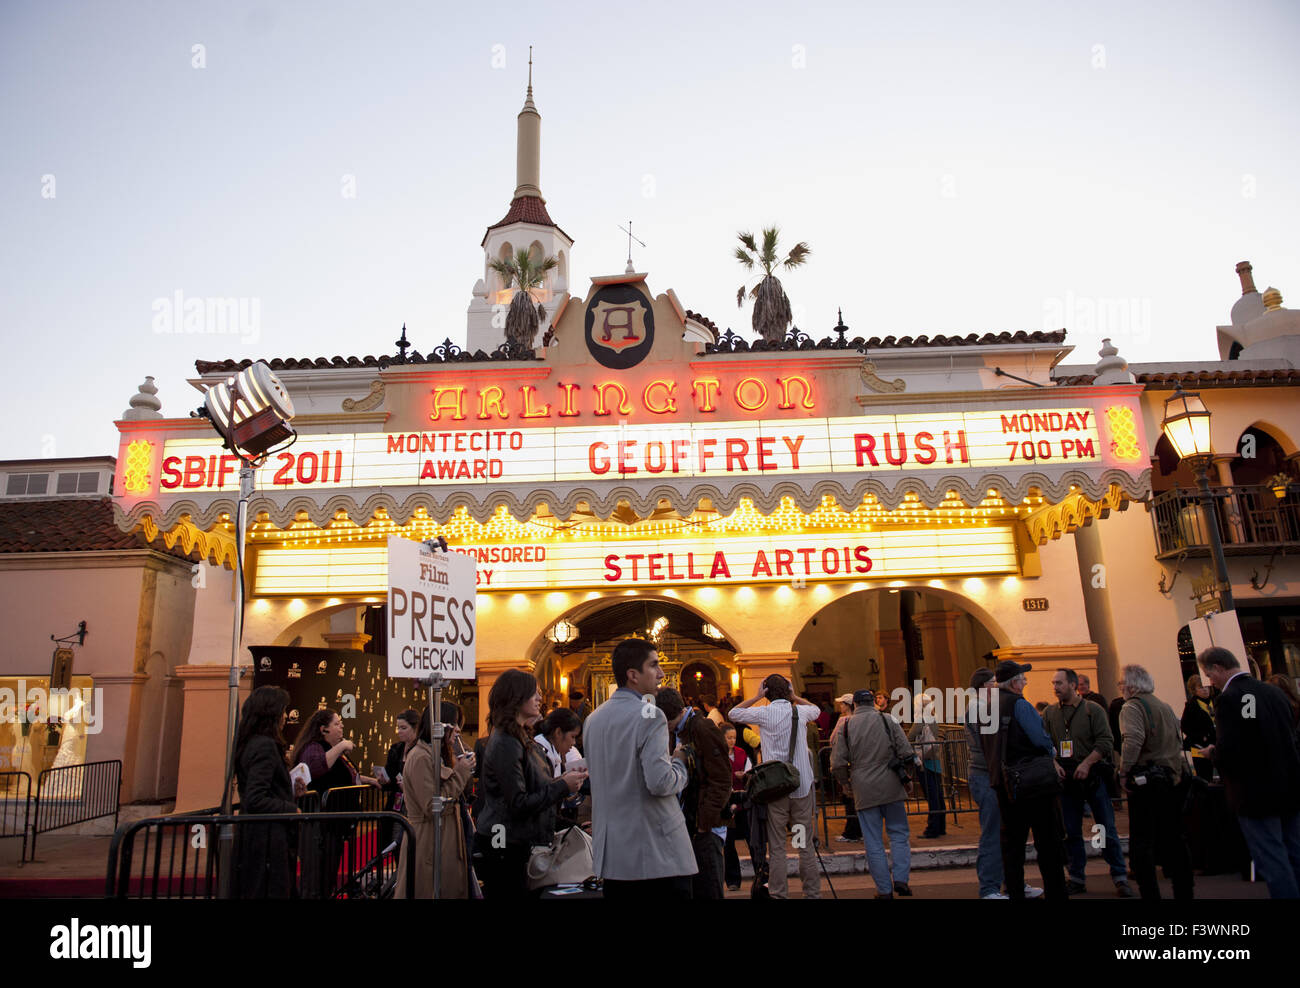 geoffrey rush headlines at arlington theatre - Stock Image